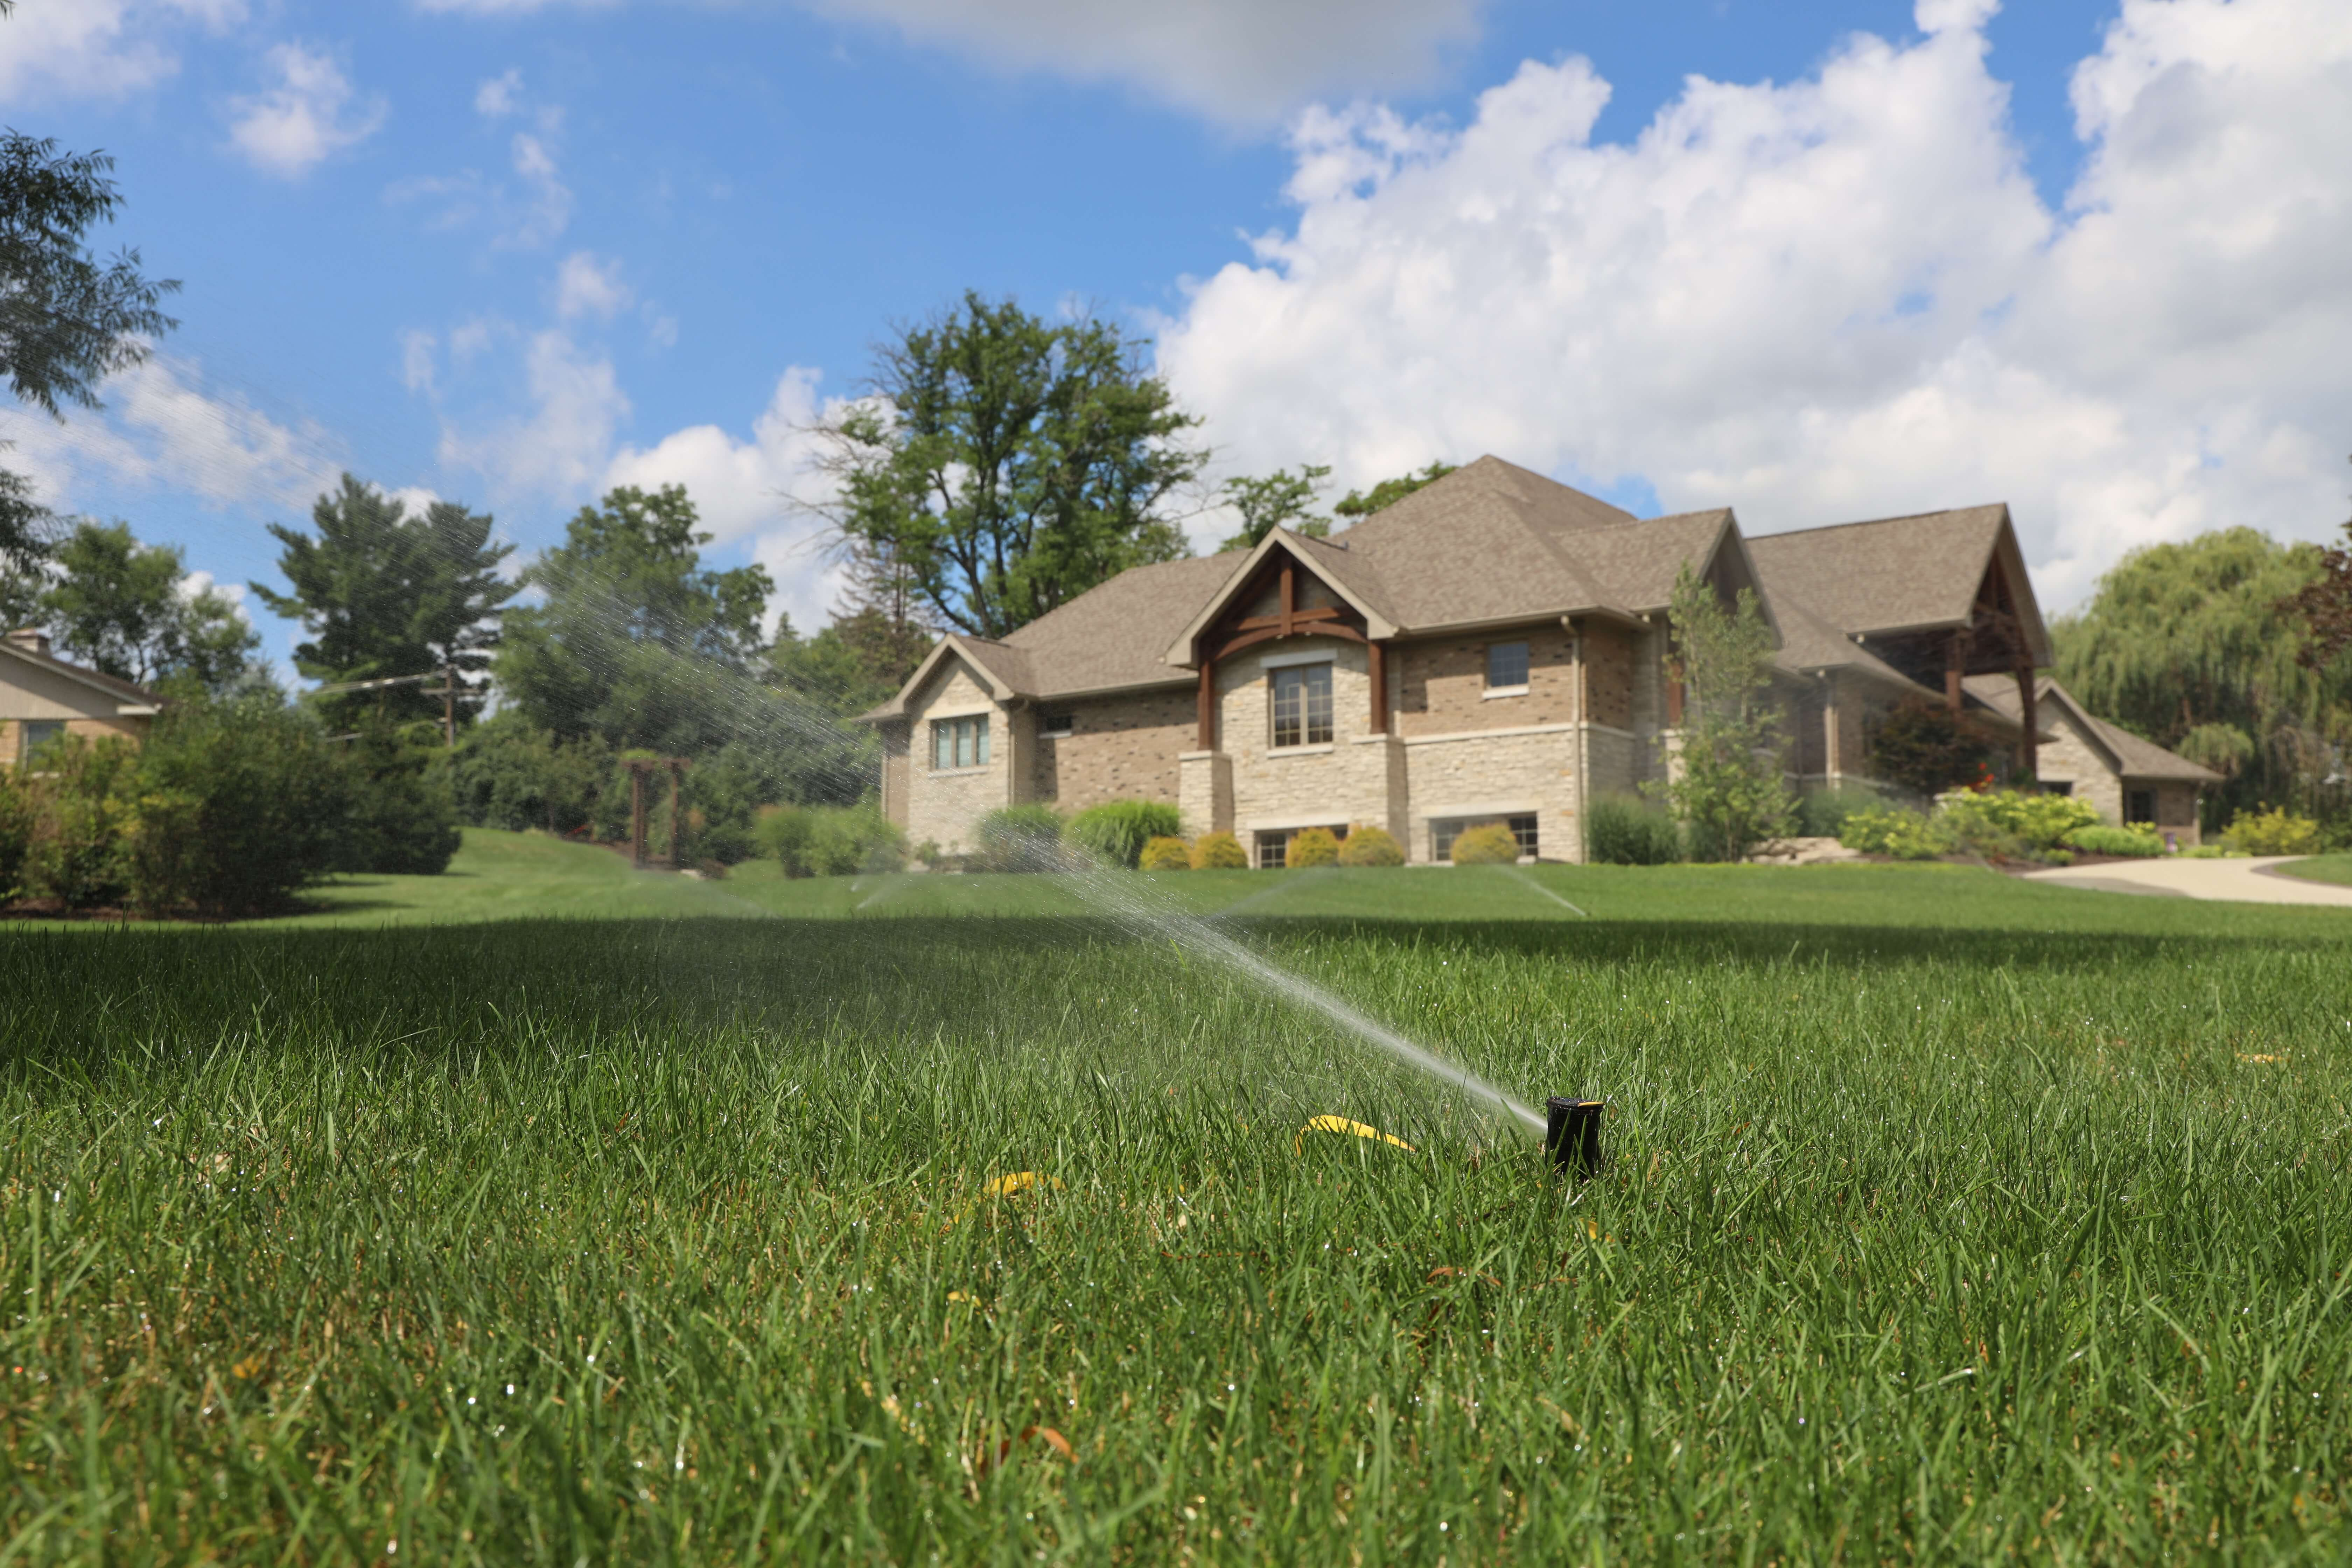 Chicagoland Commercial Sprinklers - Carefree Lawn Sprinklers Inc.